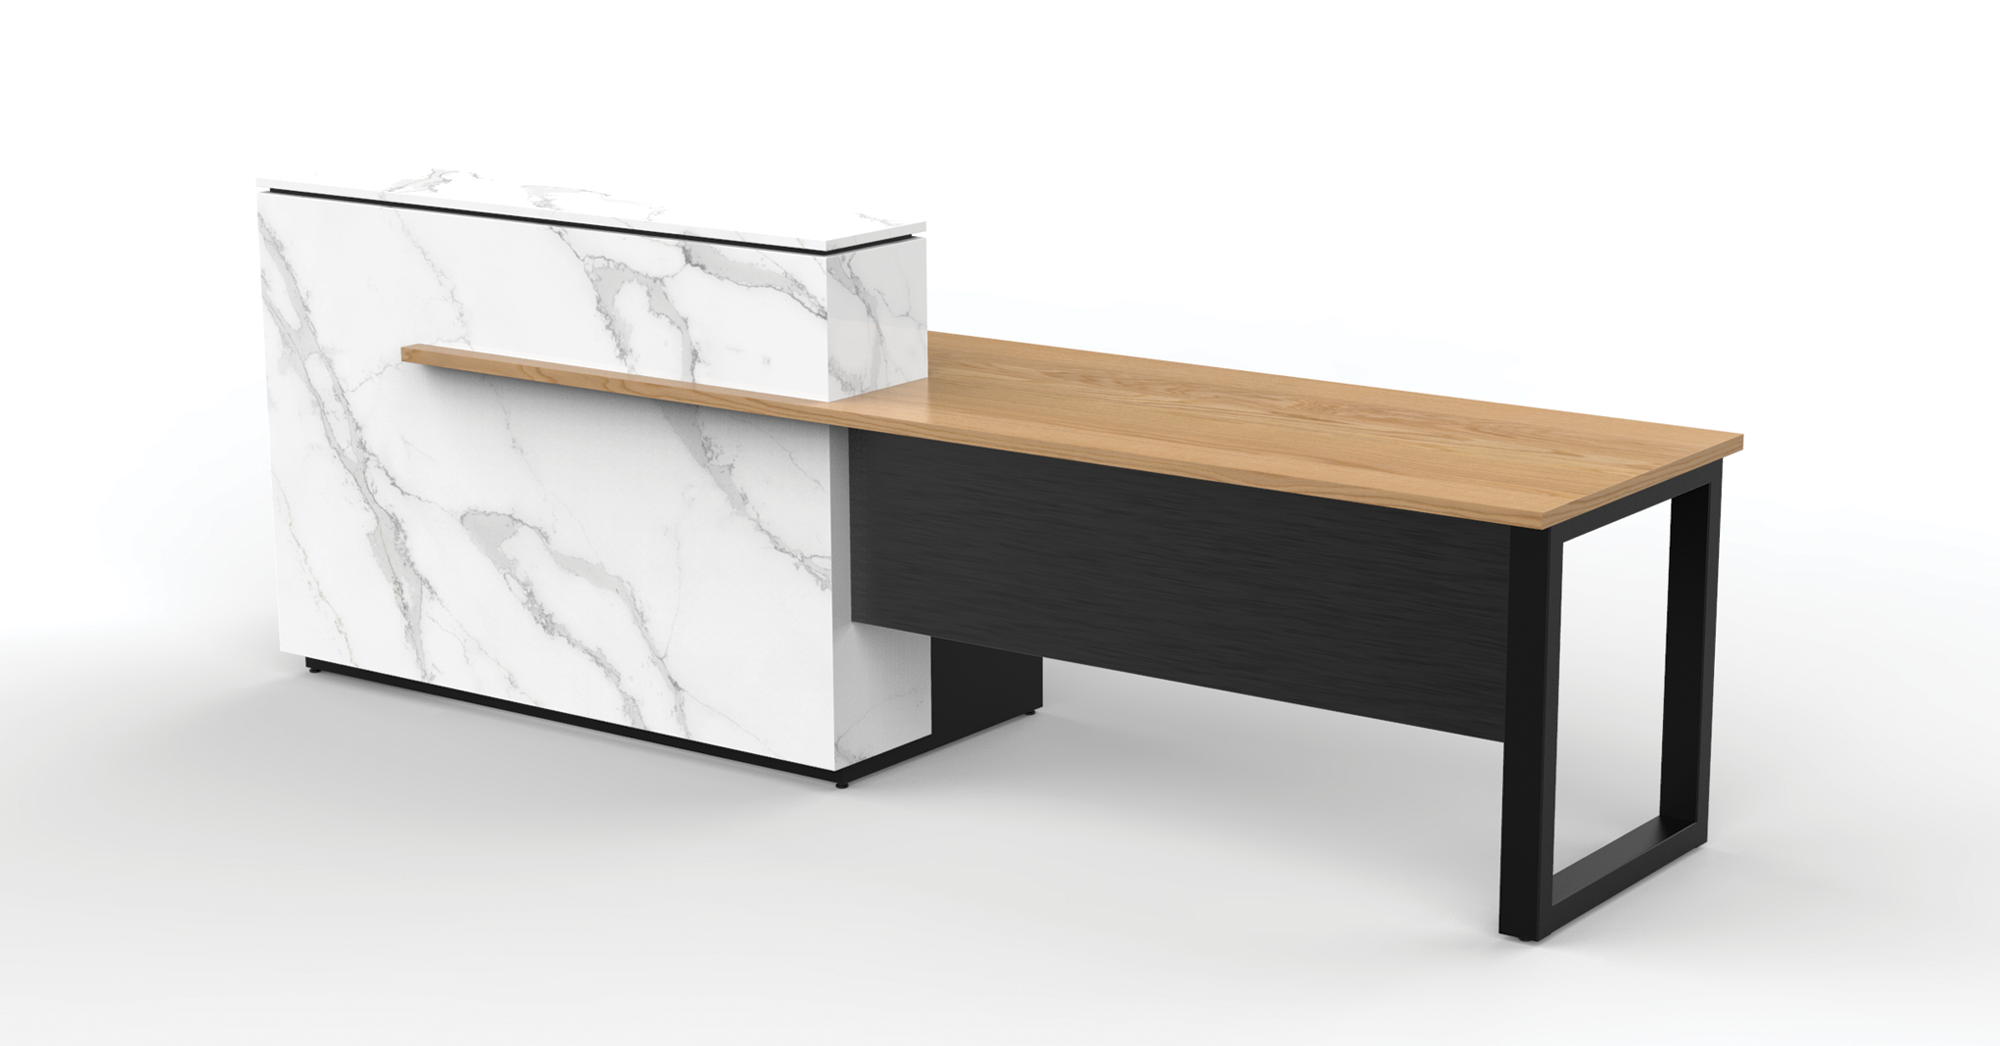 Custom reception desk, Eric Schroeder design